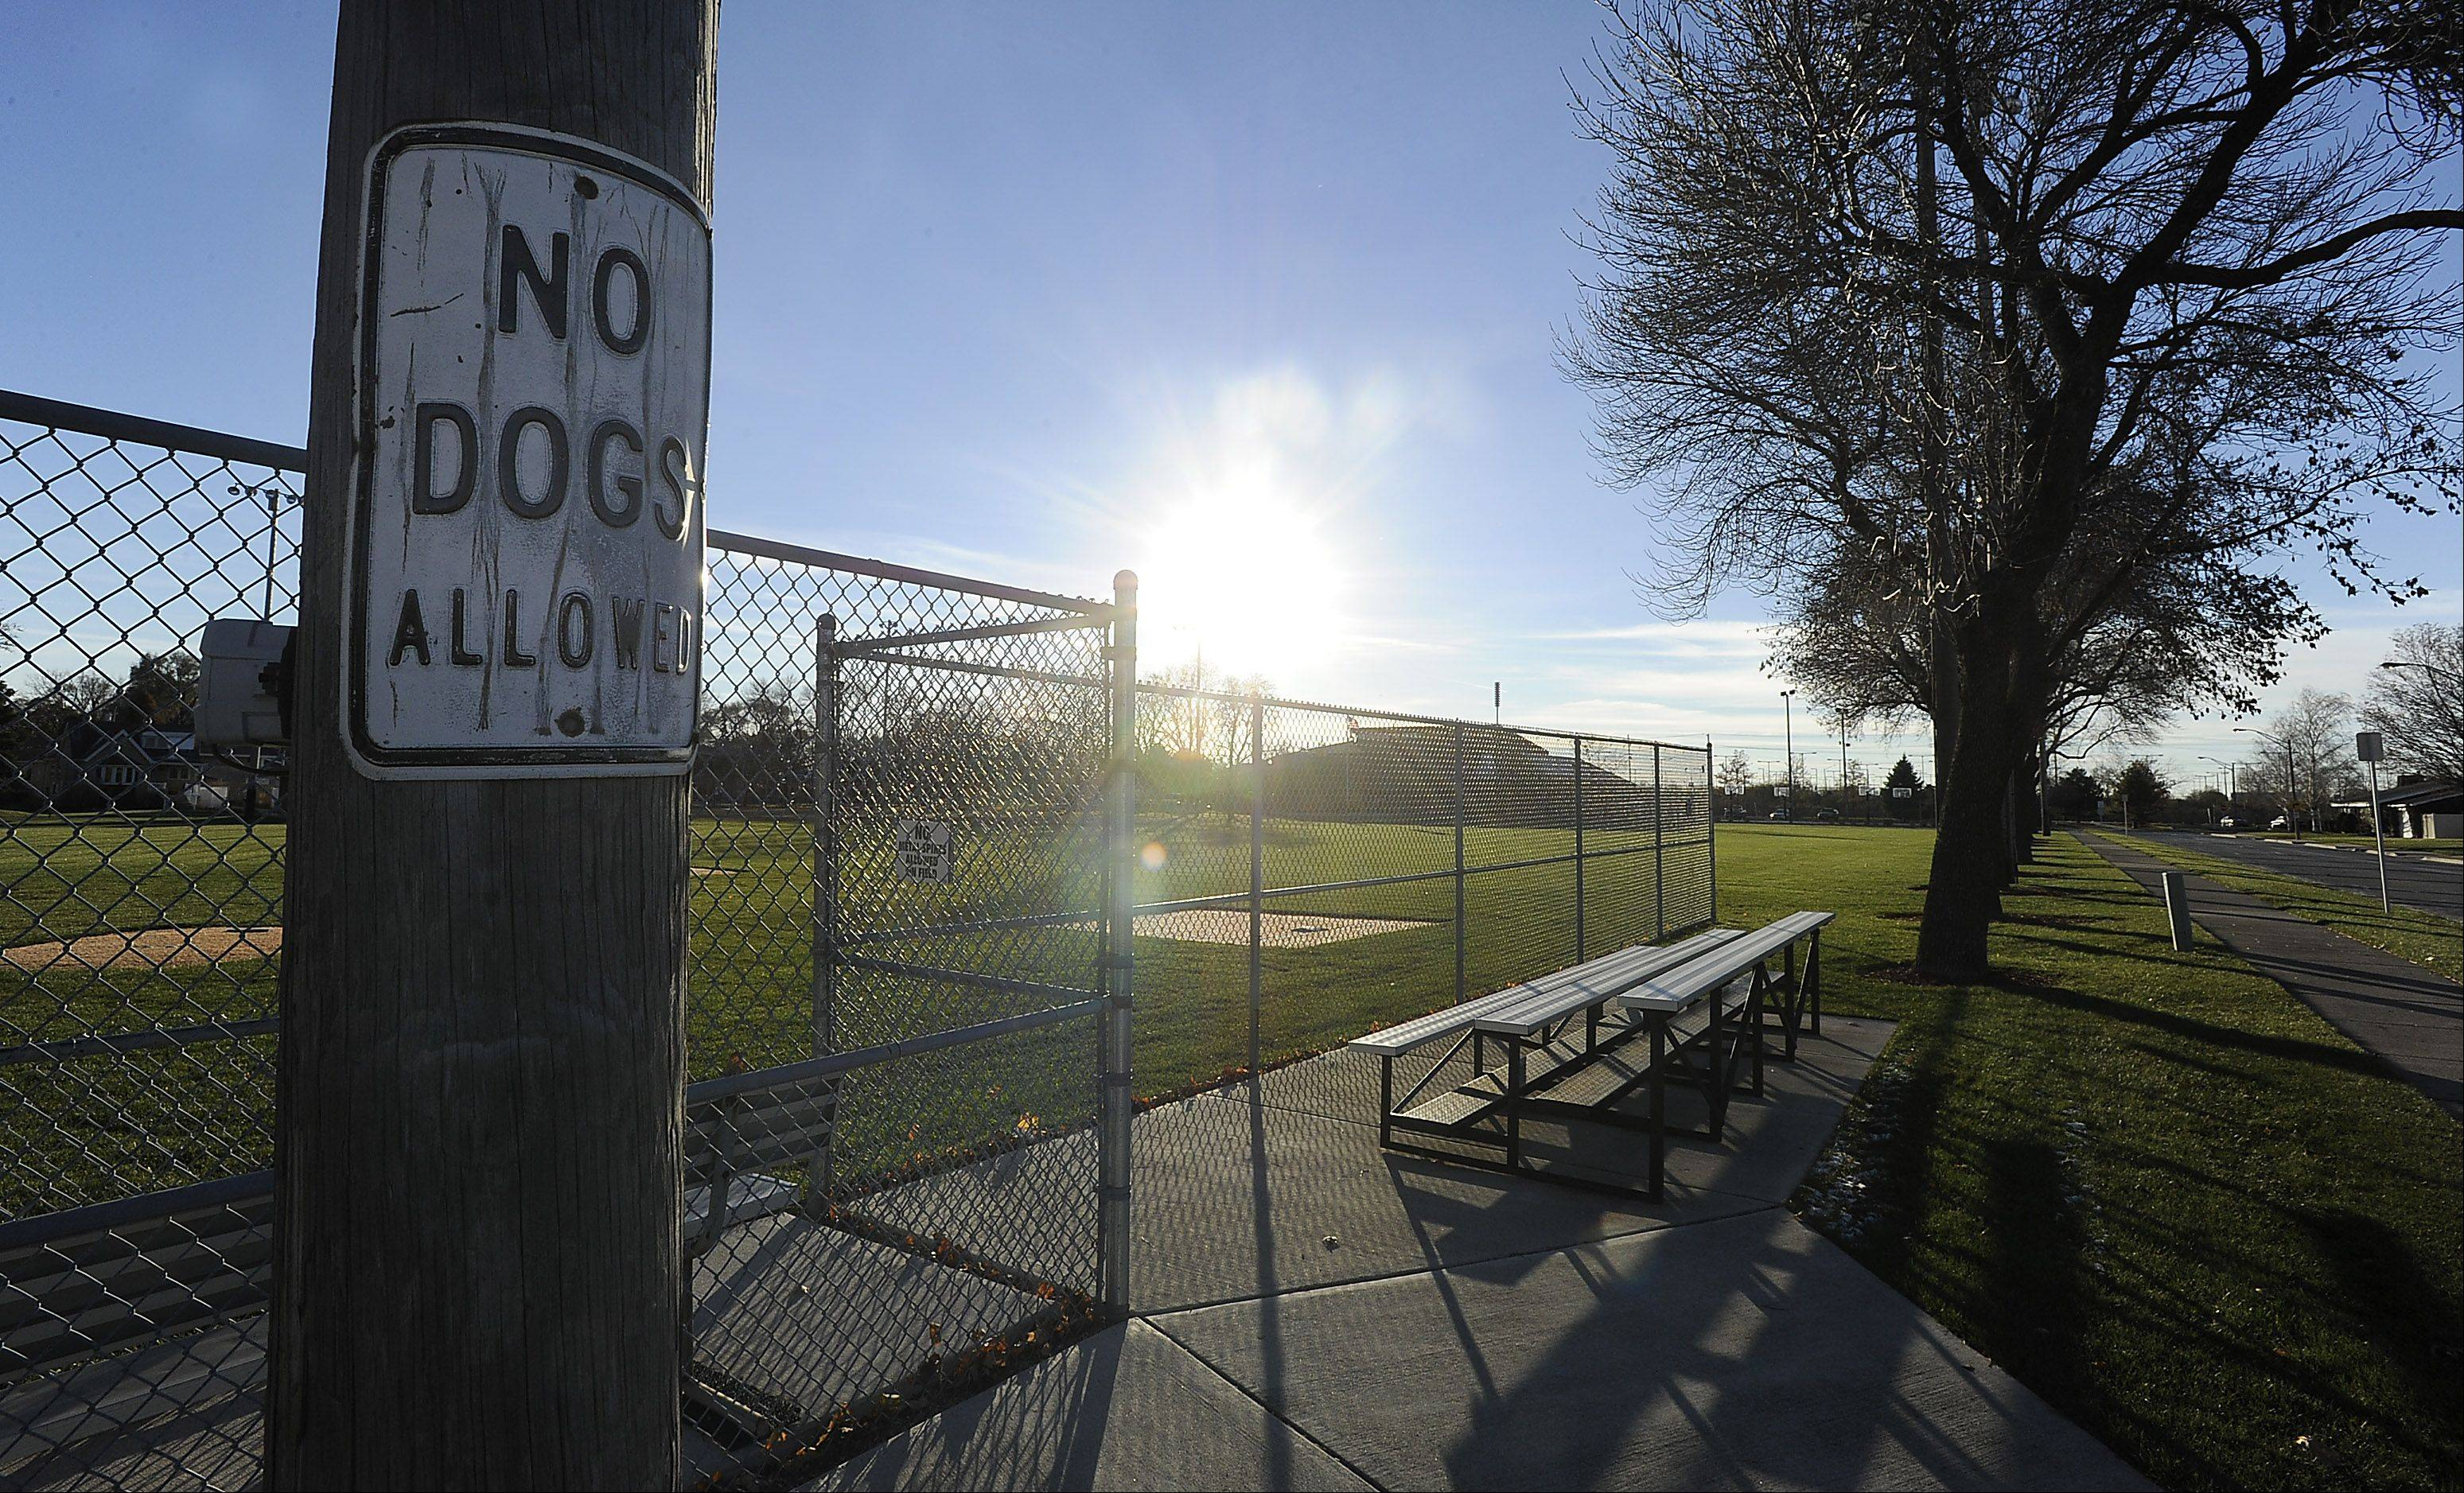 Dogs have been banned from Margaret J. Lange Park in Rosemont for safety reasons, park district officials said. The park district updated its policy this week to bring it in line with what had been village practice, as reflected in this existing sign.